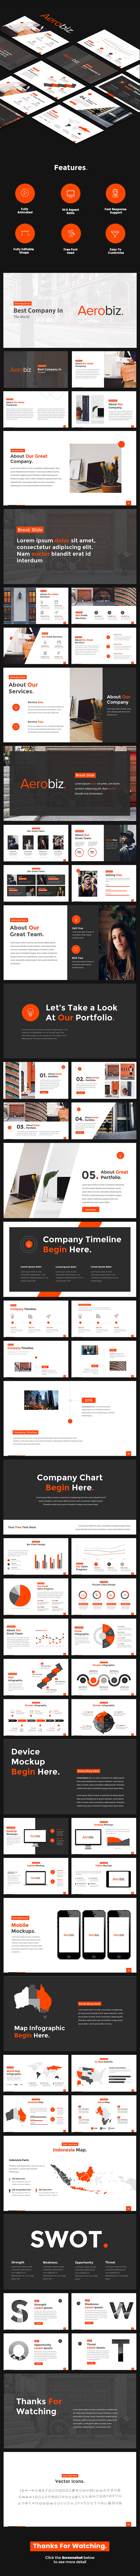 Aerobiz - Professional Business Powerpoint Template - Business PowerPoint Templates